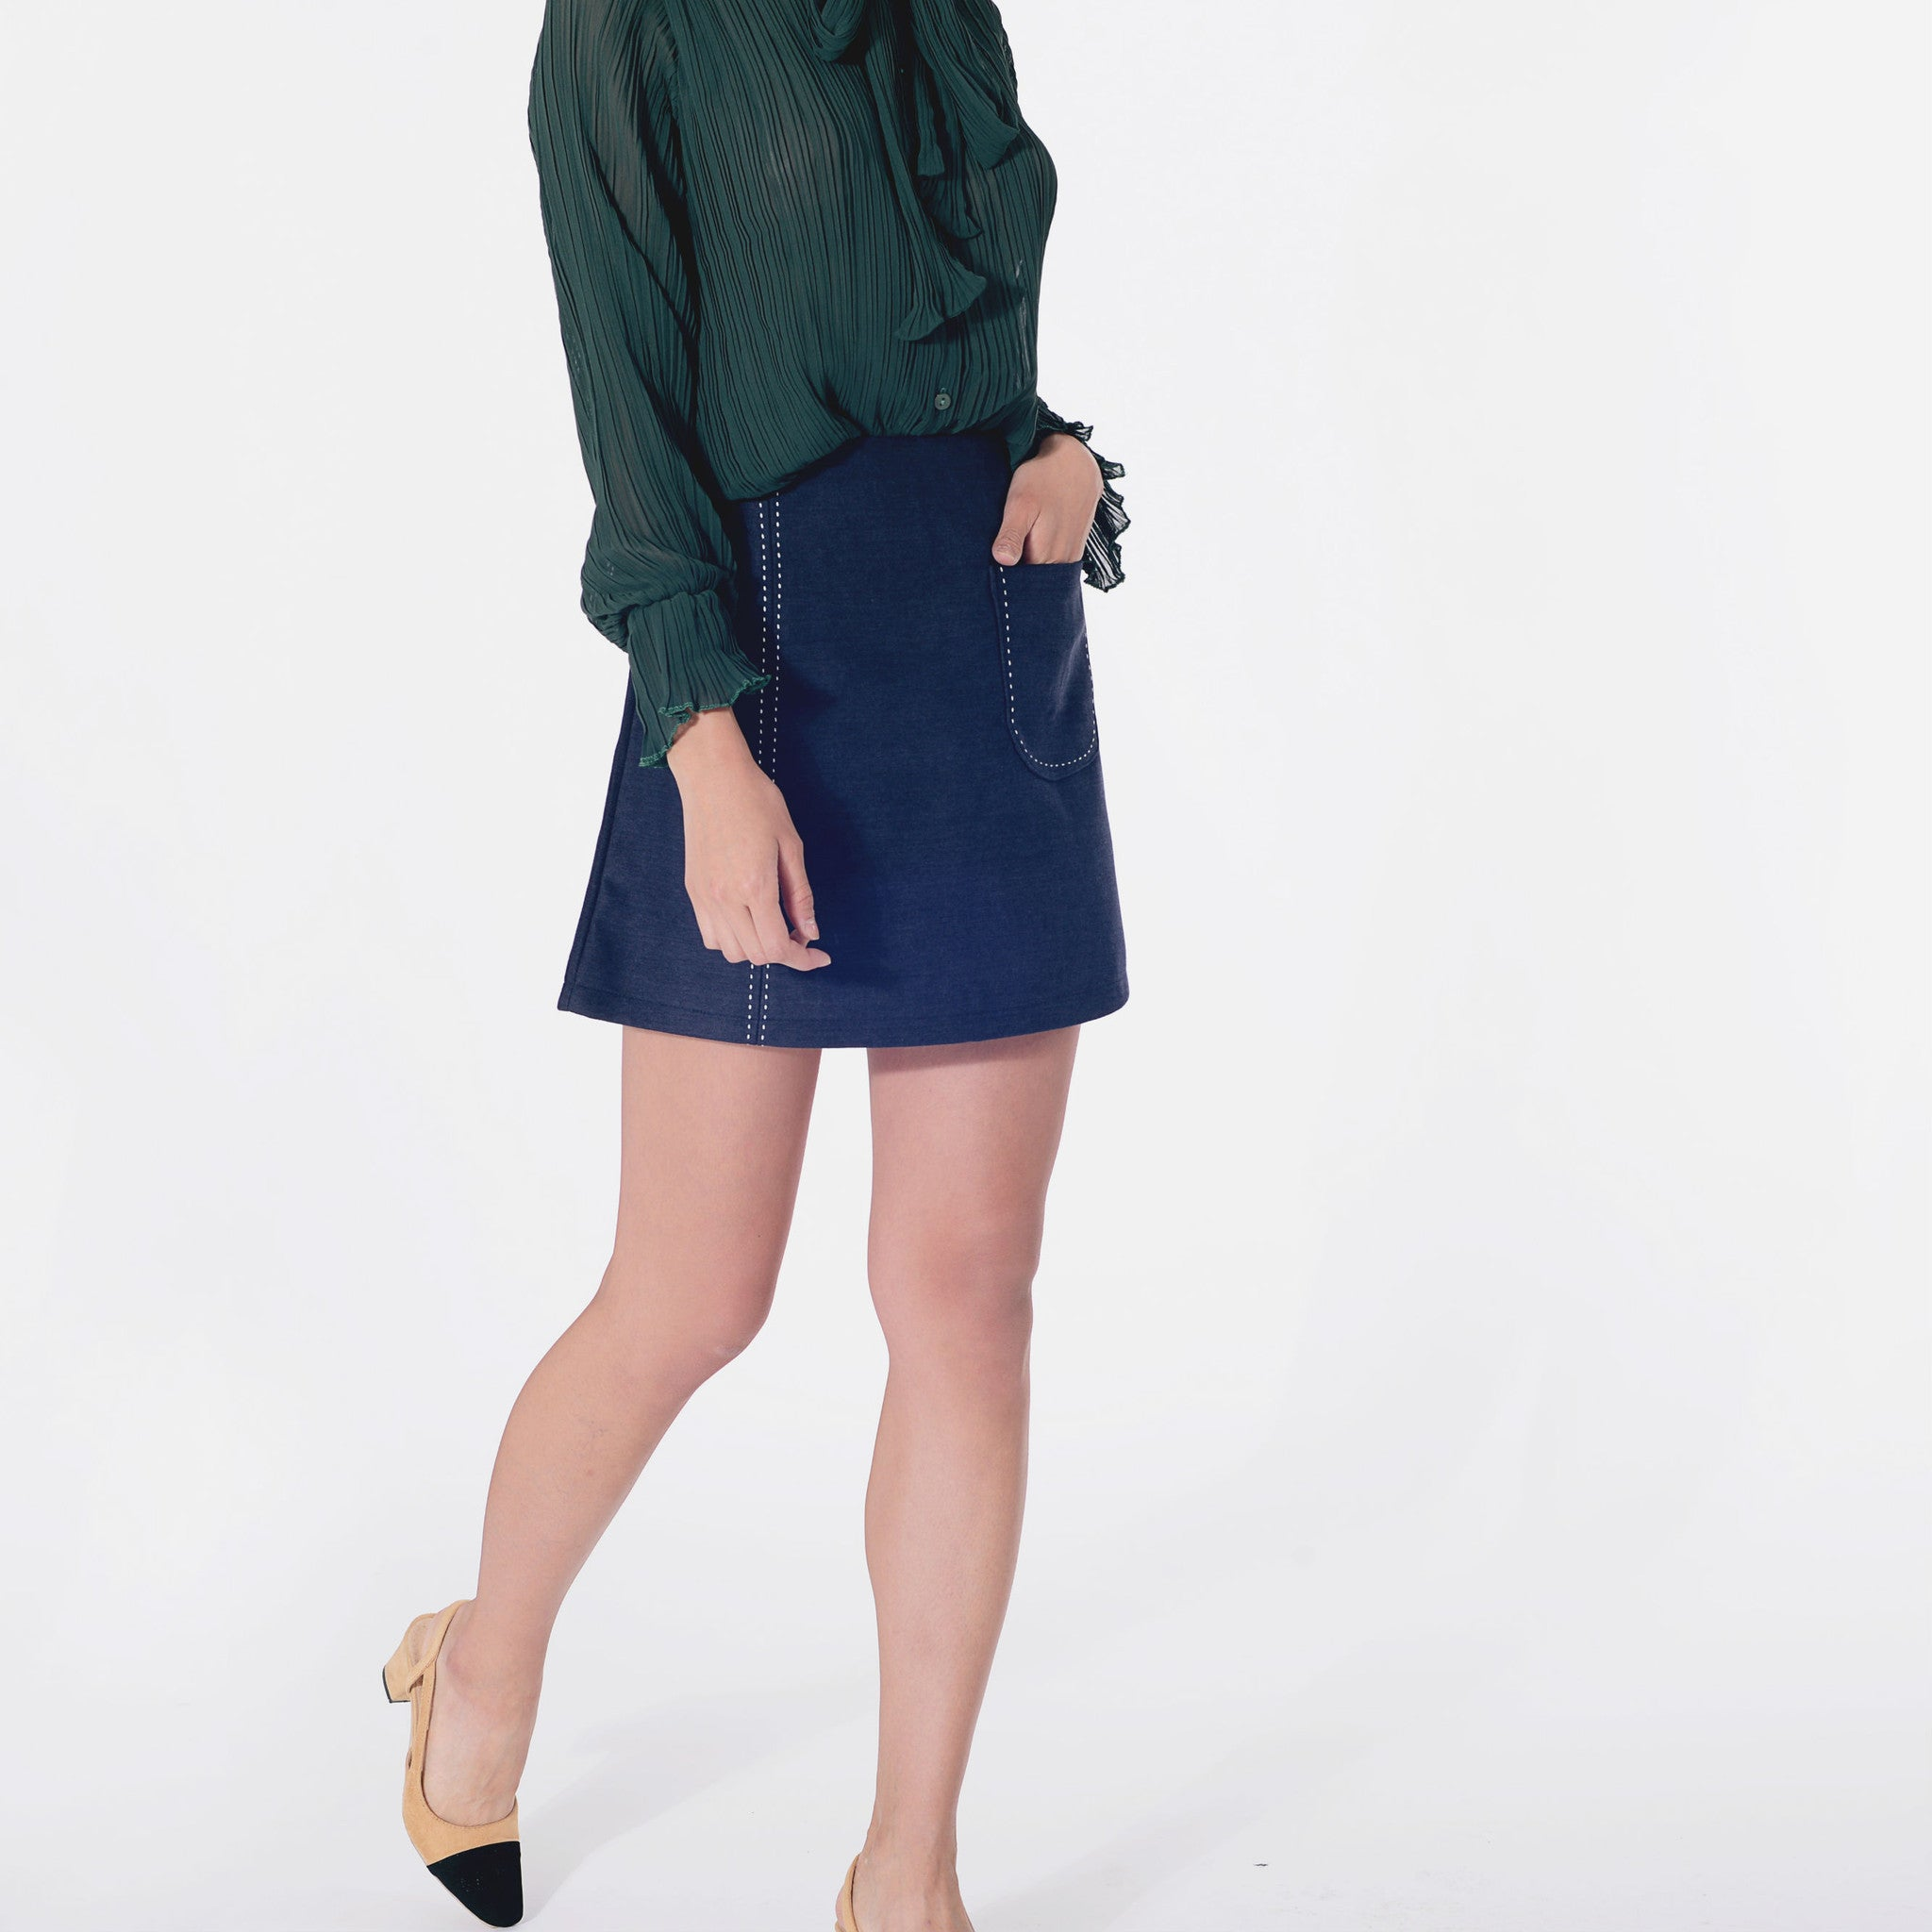 Sandra Velvety Skirt - Navy Blue